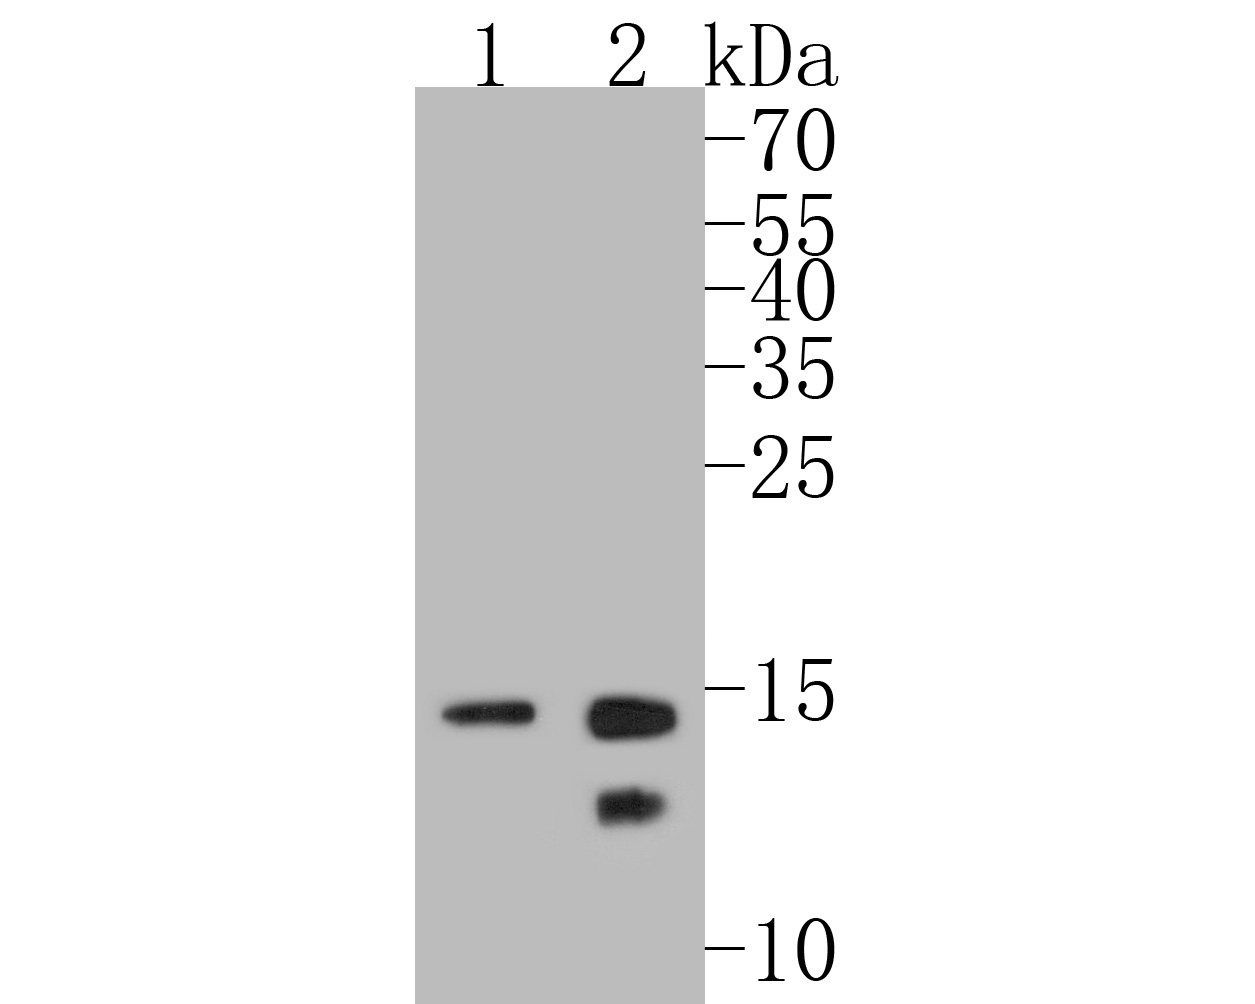 Western blot analysis of Histone H2B on different lysates. Proteins were transferred to a PVDF membrane and blocked with 5% BSA in PBS for 1 hour at room temperature. The primary antibody (ET1612-25, 1/500) was used in 5% BSA at room temperature for 2 hours. Goat Anti-Rabbit IgG - HRP Secondary Antibody (HA1001) at 1:5,000 dilution was used for 1 hour at room temperature.<br /> Positive control: <br /> Lane 1: Hela cell lysate<br /> Lane 2: PC-12 cell lysate